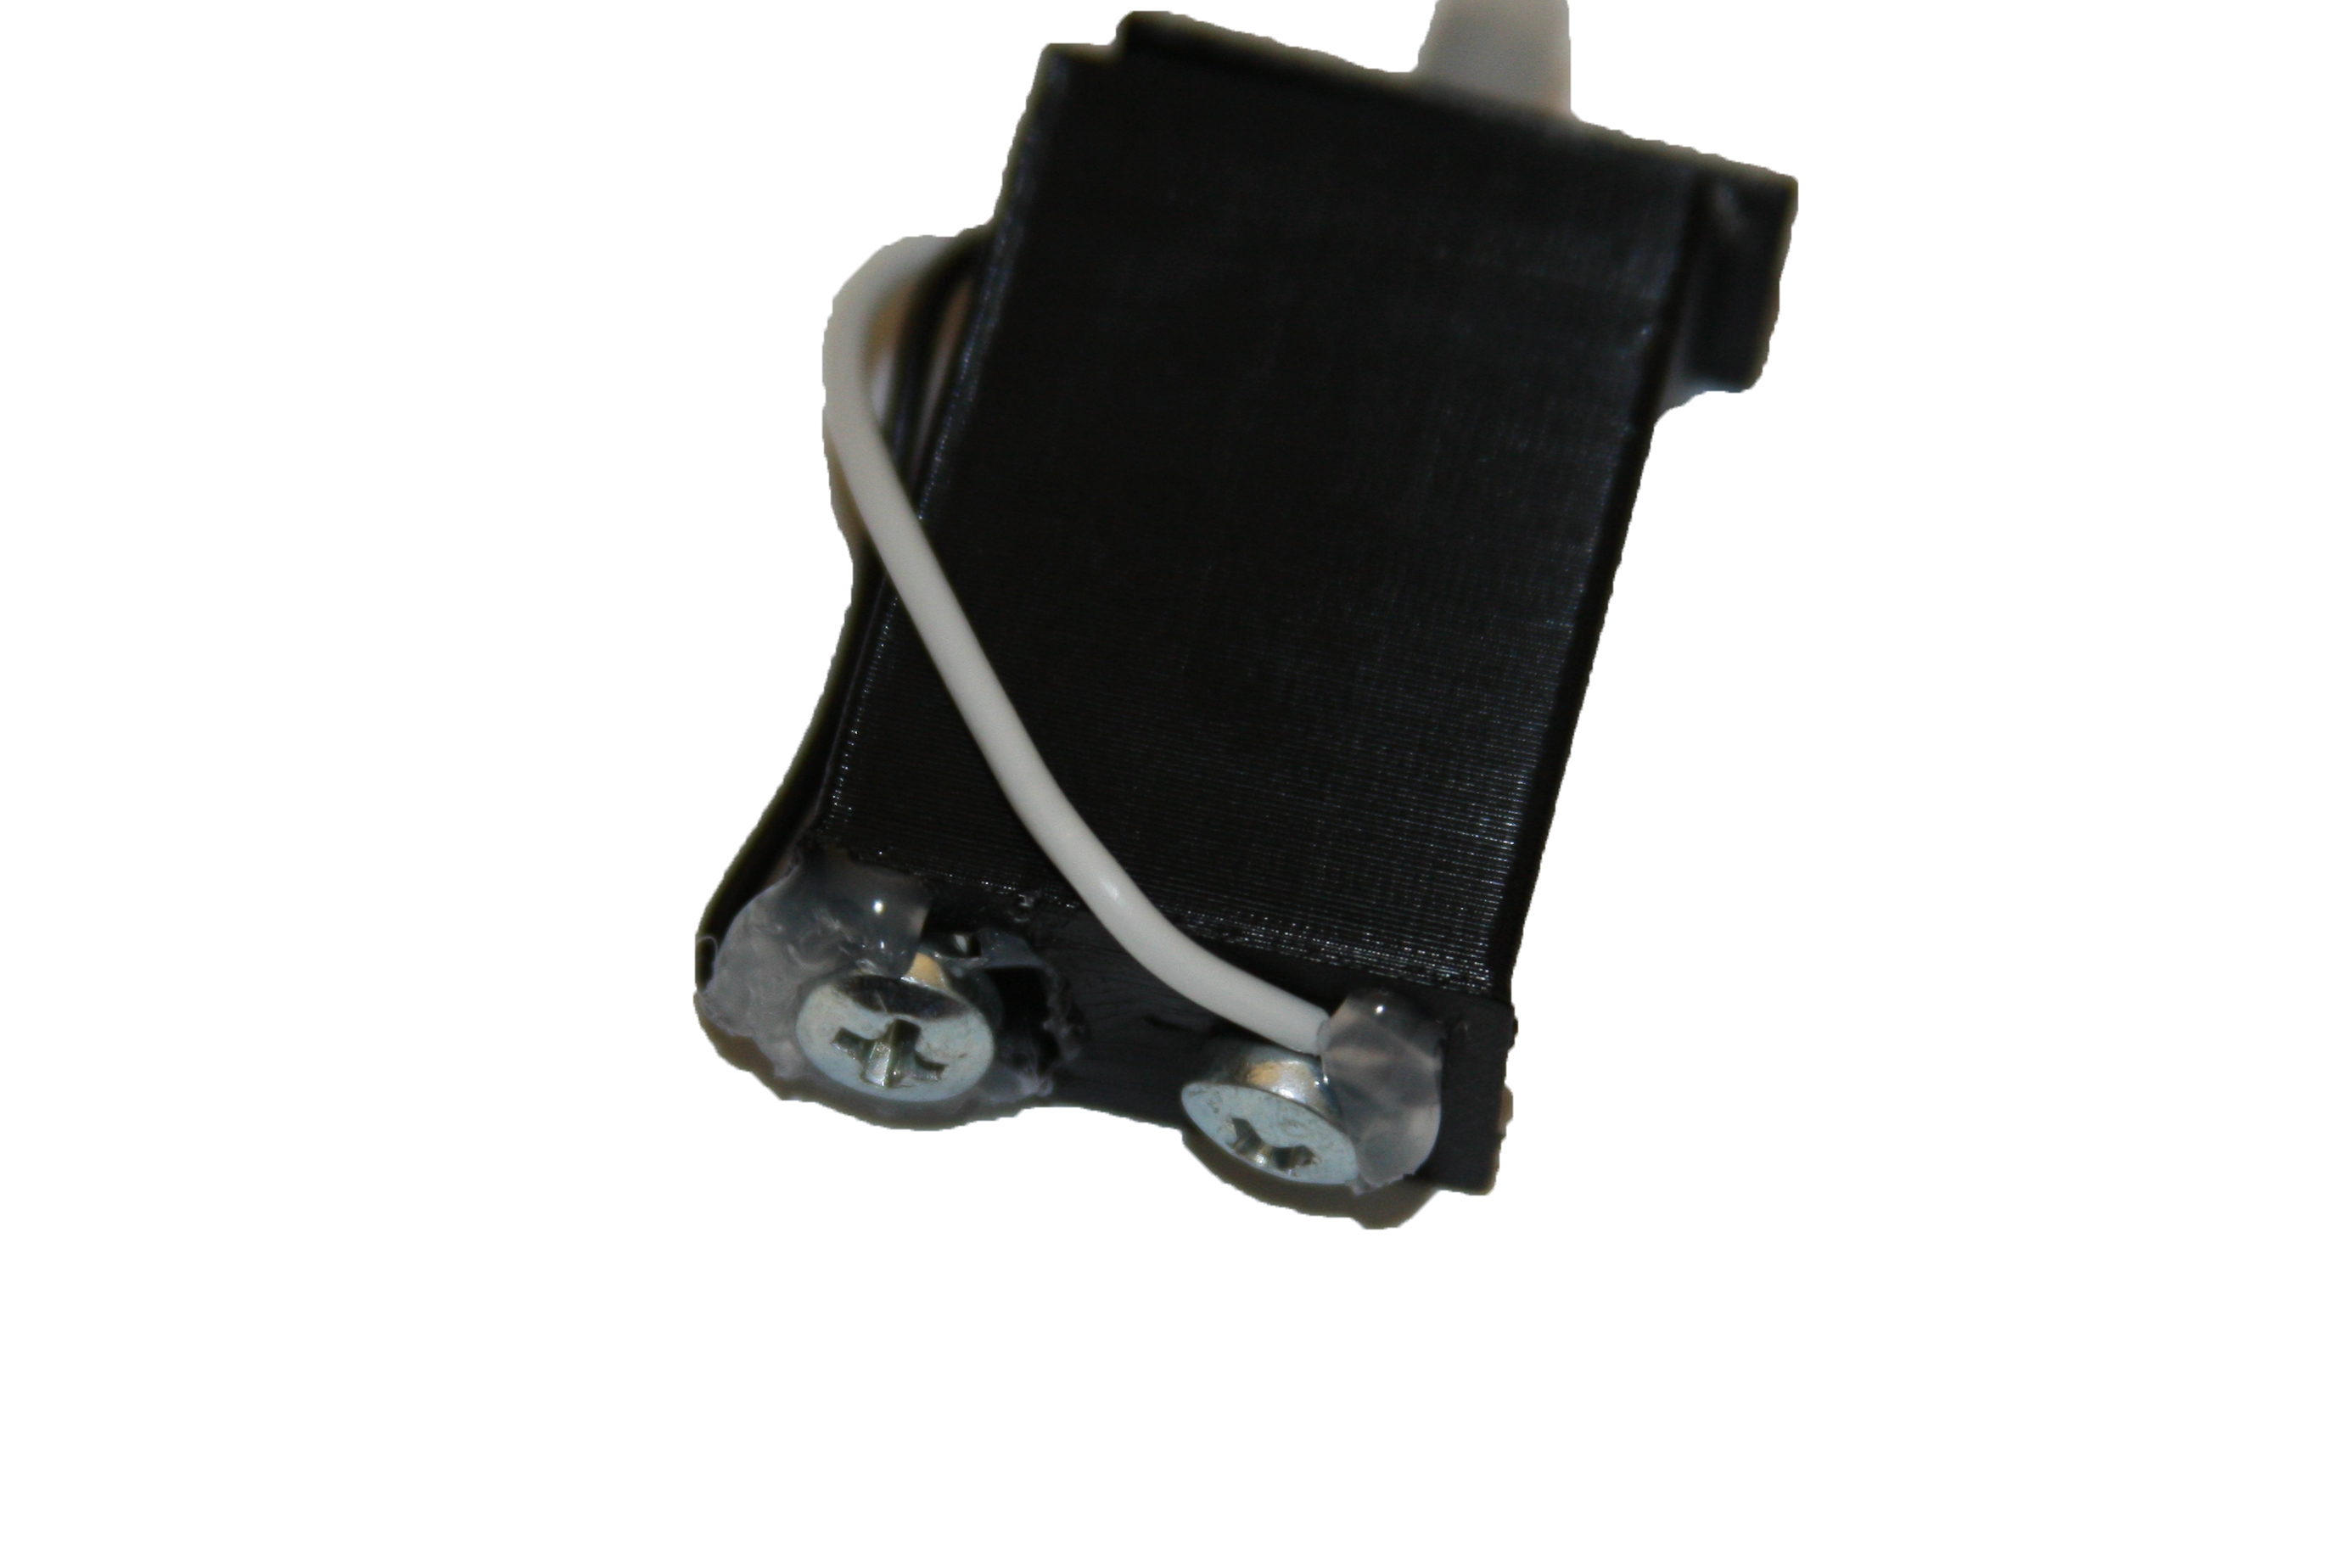 Picture of Attach Wires and Glue Screws in Place